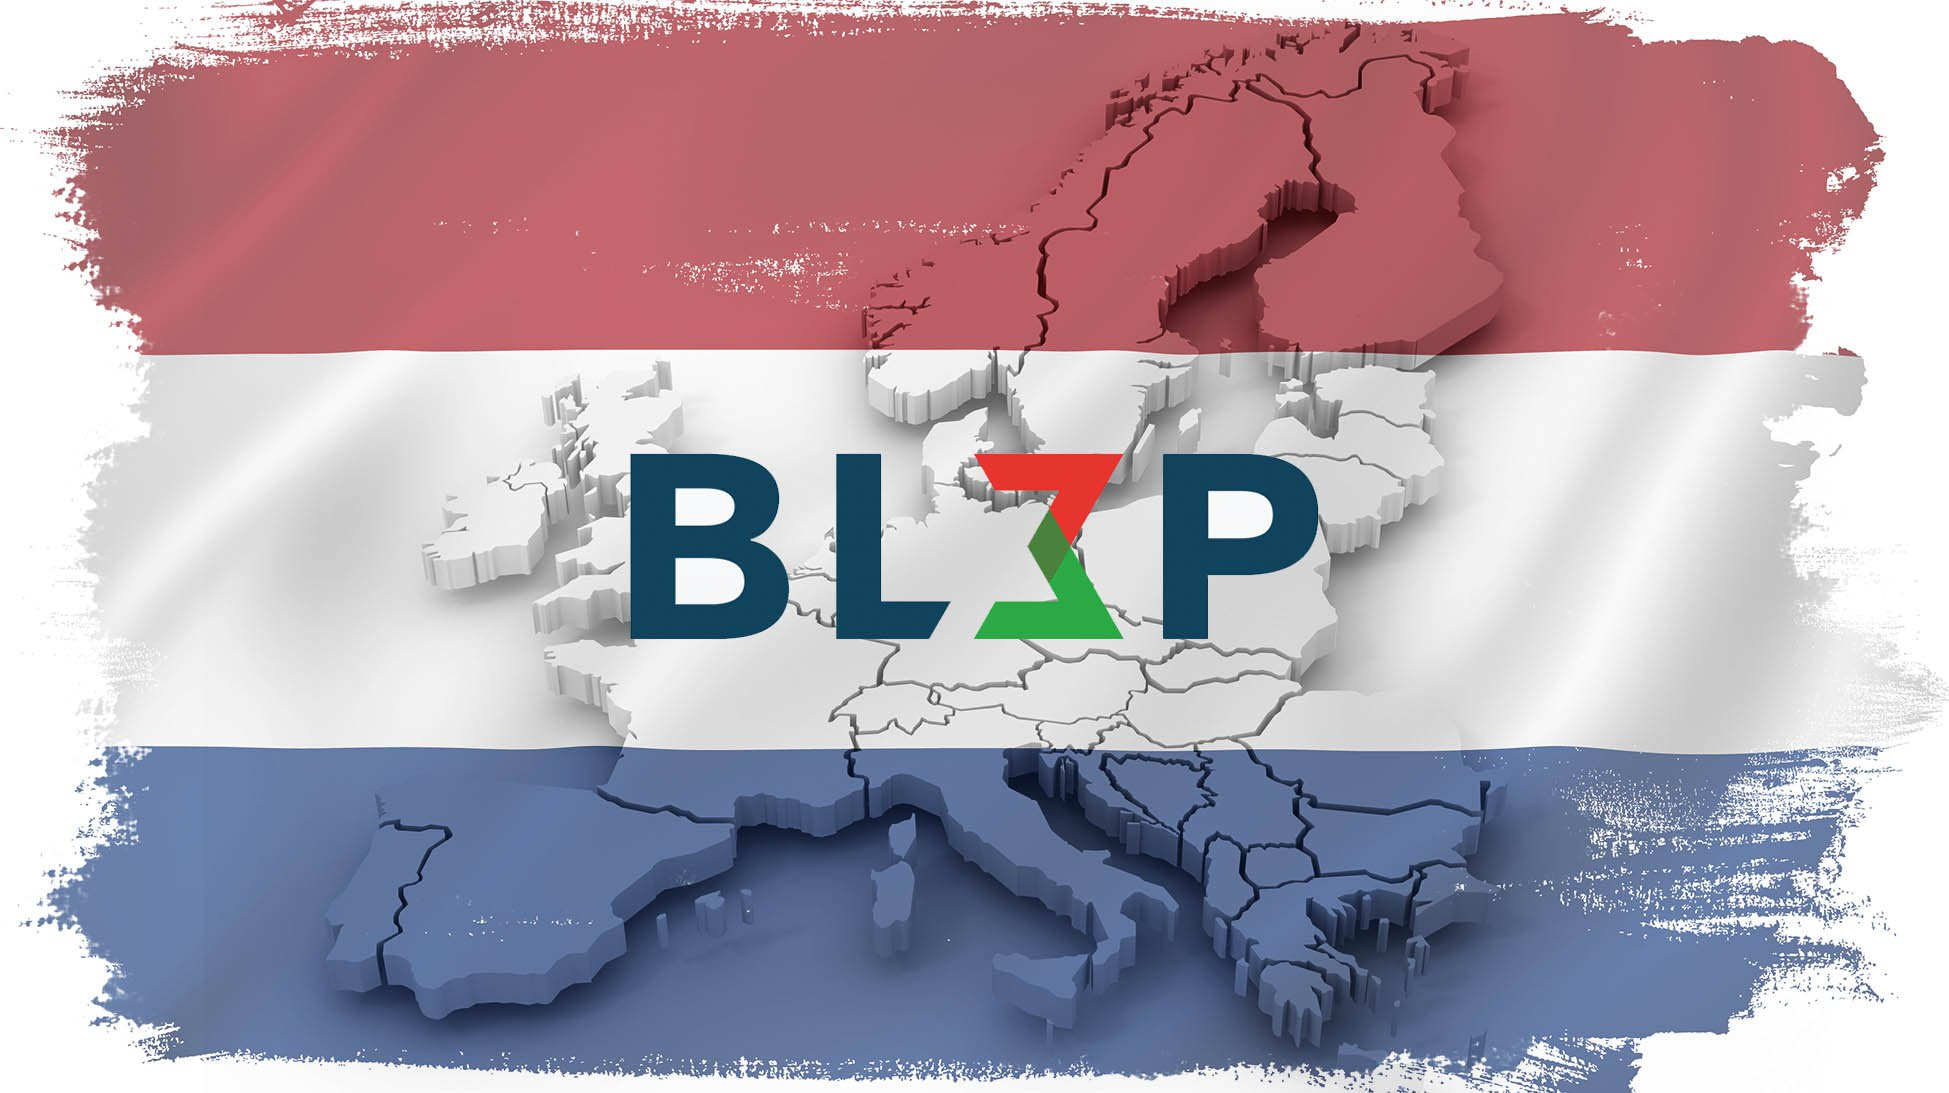 Dutch Bitcoin Exchange BL3P Increases Reach to 34 European Countries